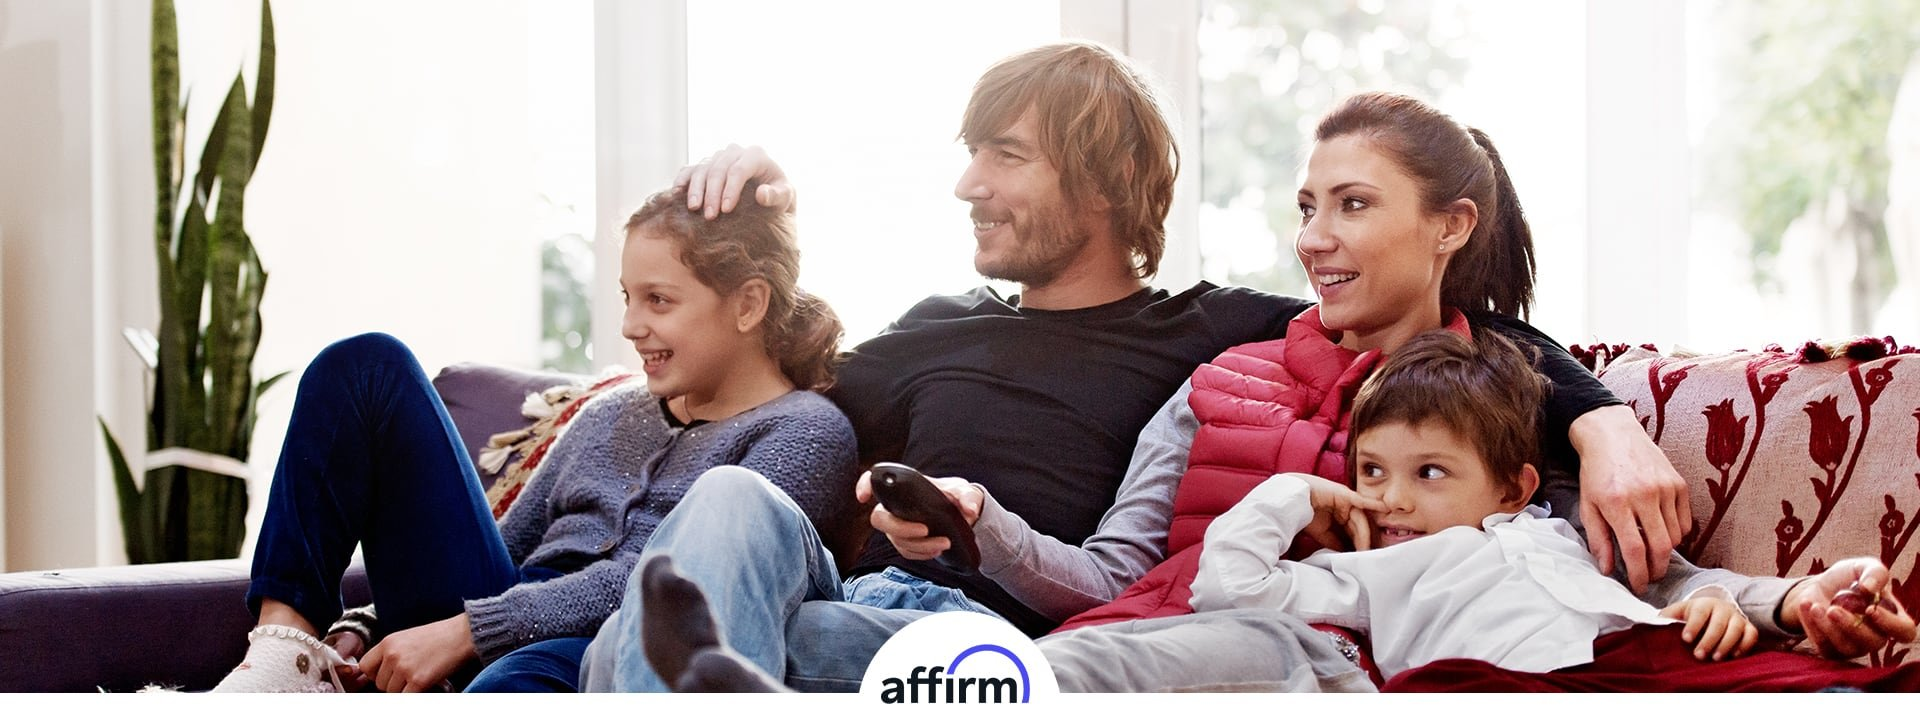 Finance your order with Affirm